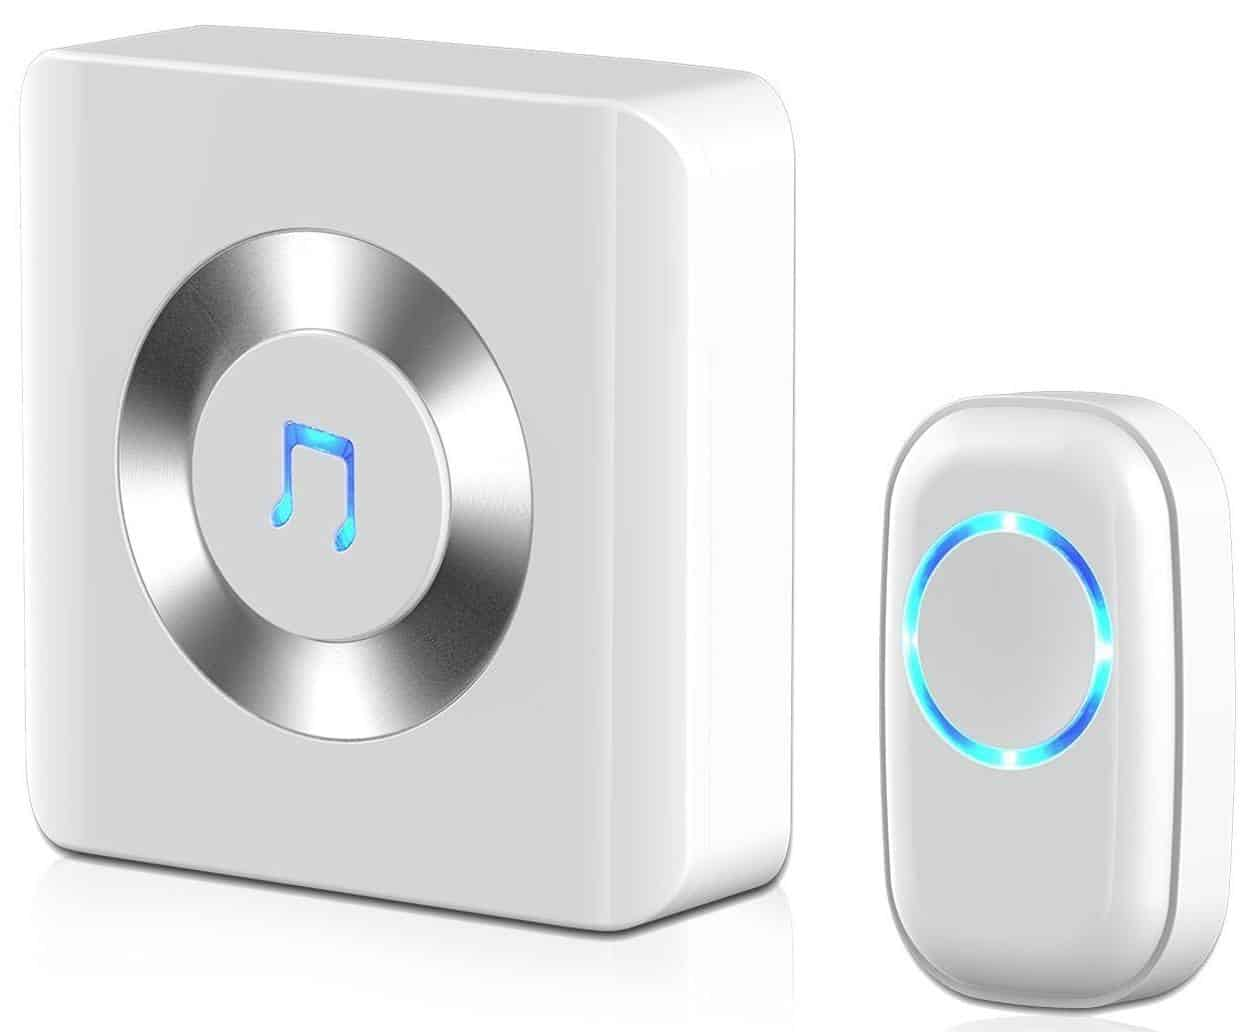 JETech Portable Wireless Doorbell